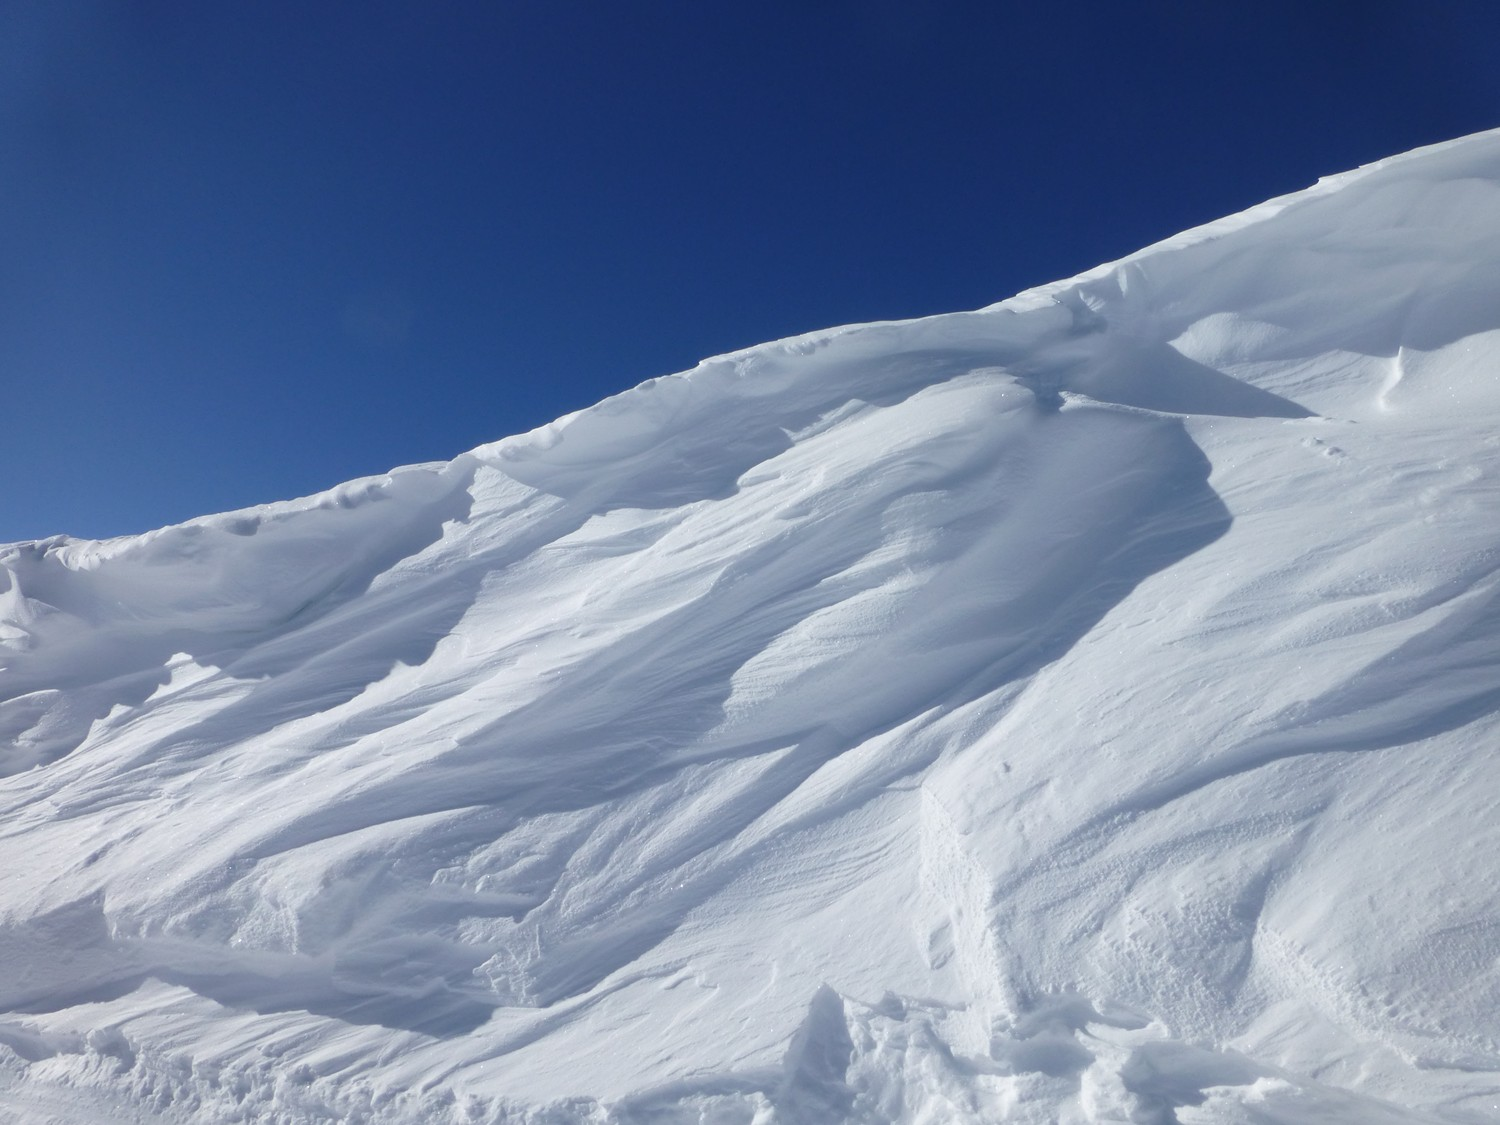 La Thuile Italy  City new picture : Skiing in La Thuile Italy | Helvellyn's Blog